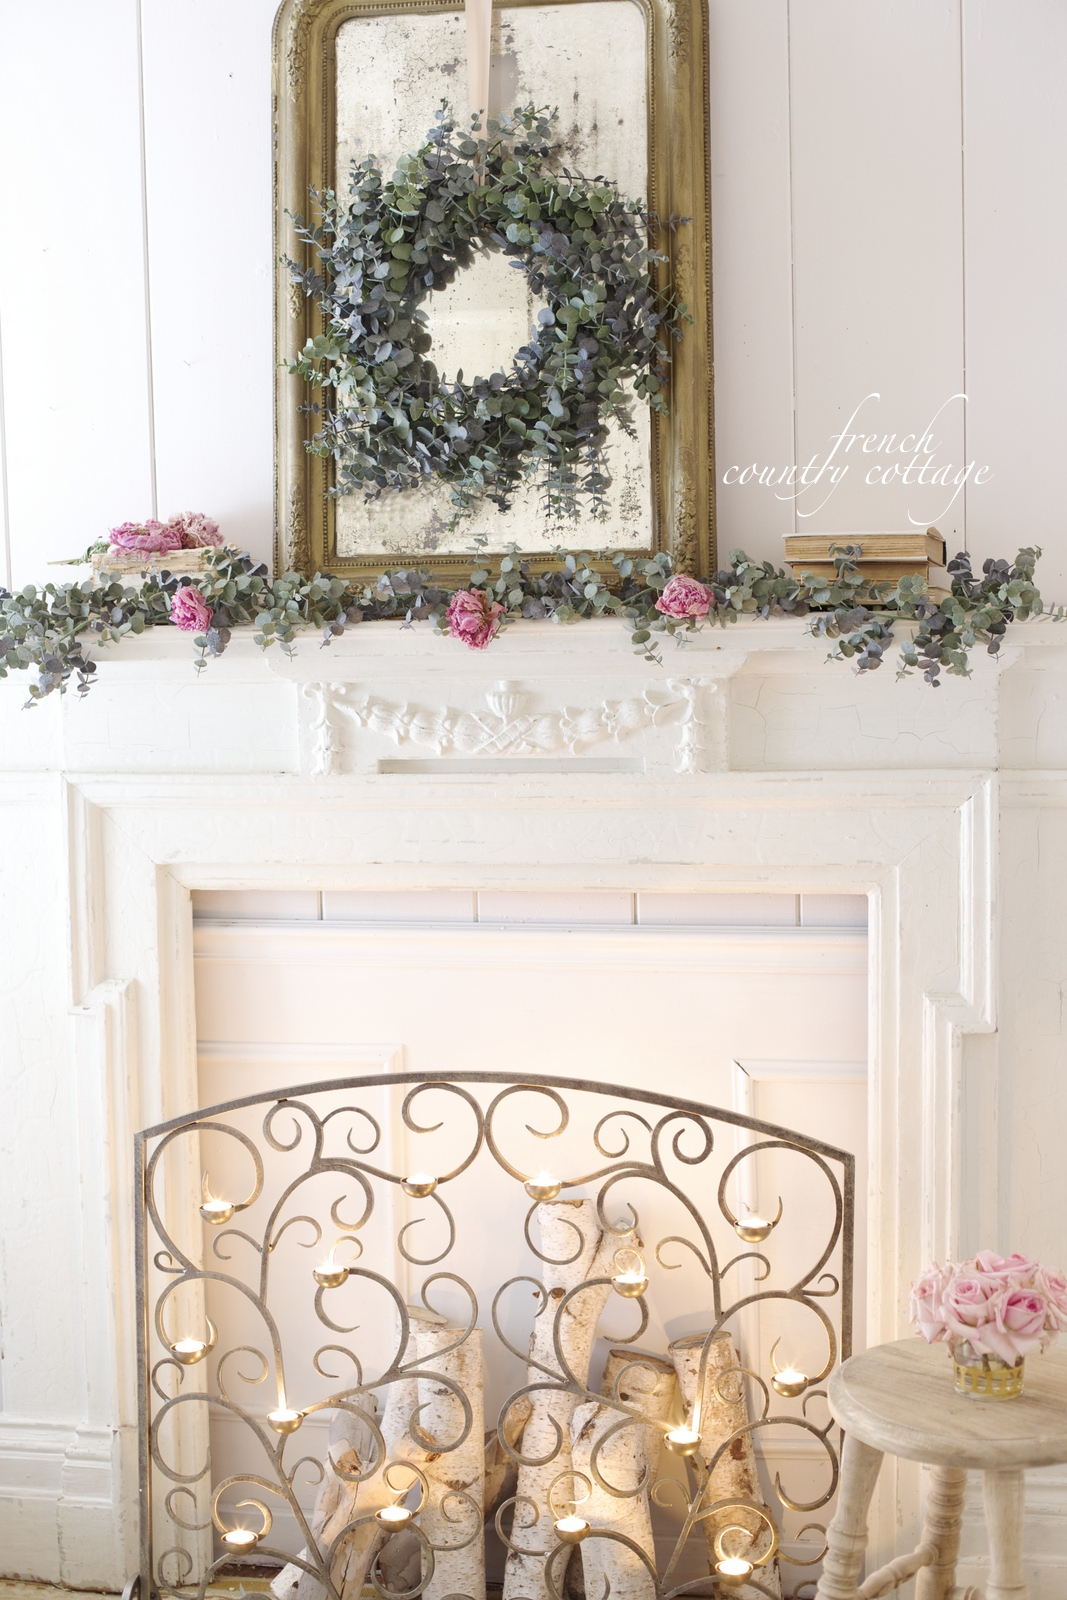 Top Eucalyptus wreath & garland (with a secret) - FRENCH COUNTRY COTTAGE ZT33